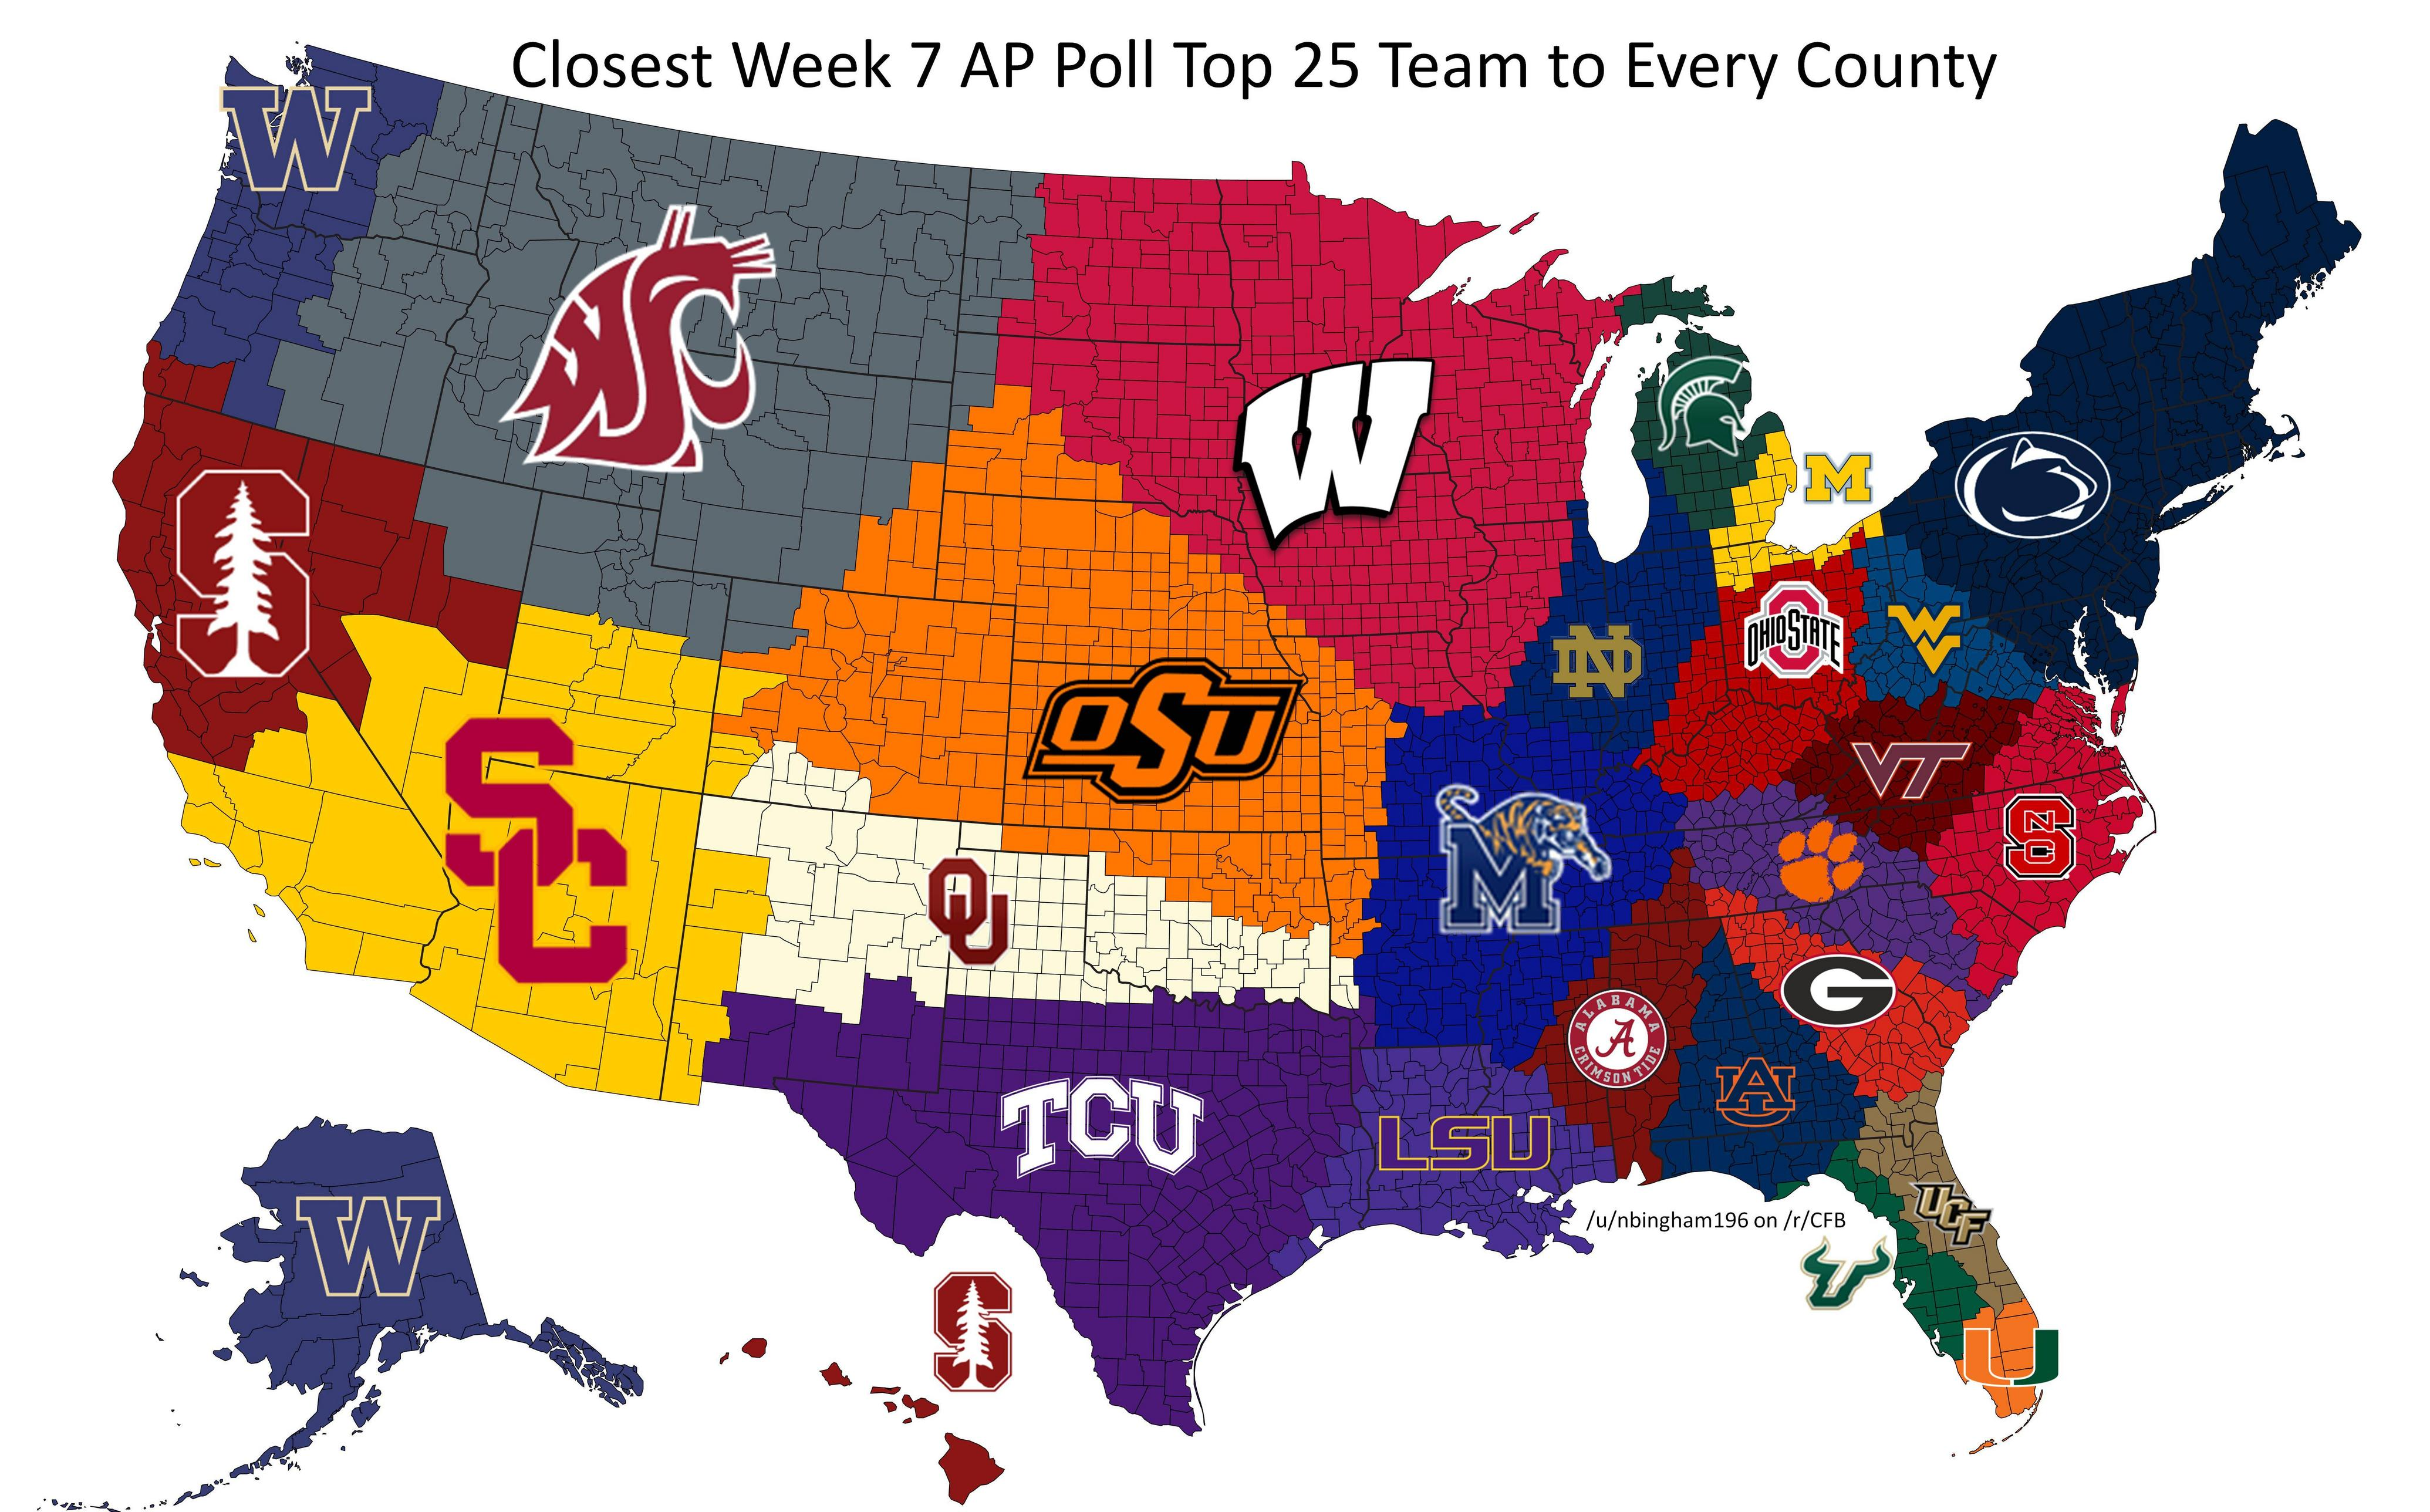 Reddit User Maps Closest AP Top Team To Every US County - Oklahoma on us map